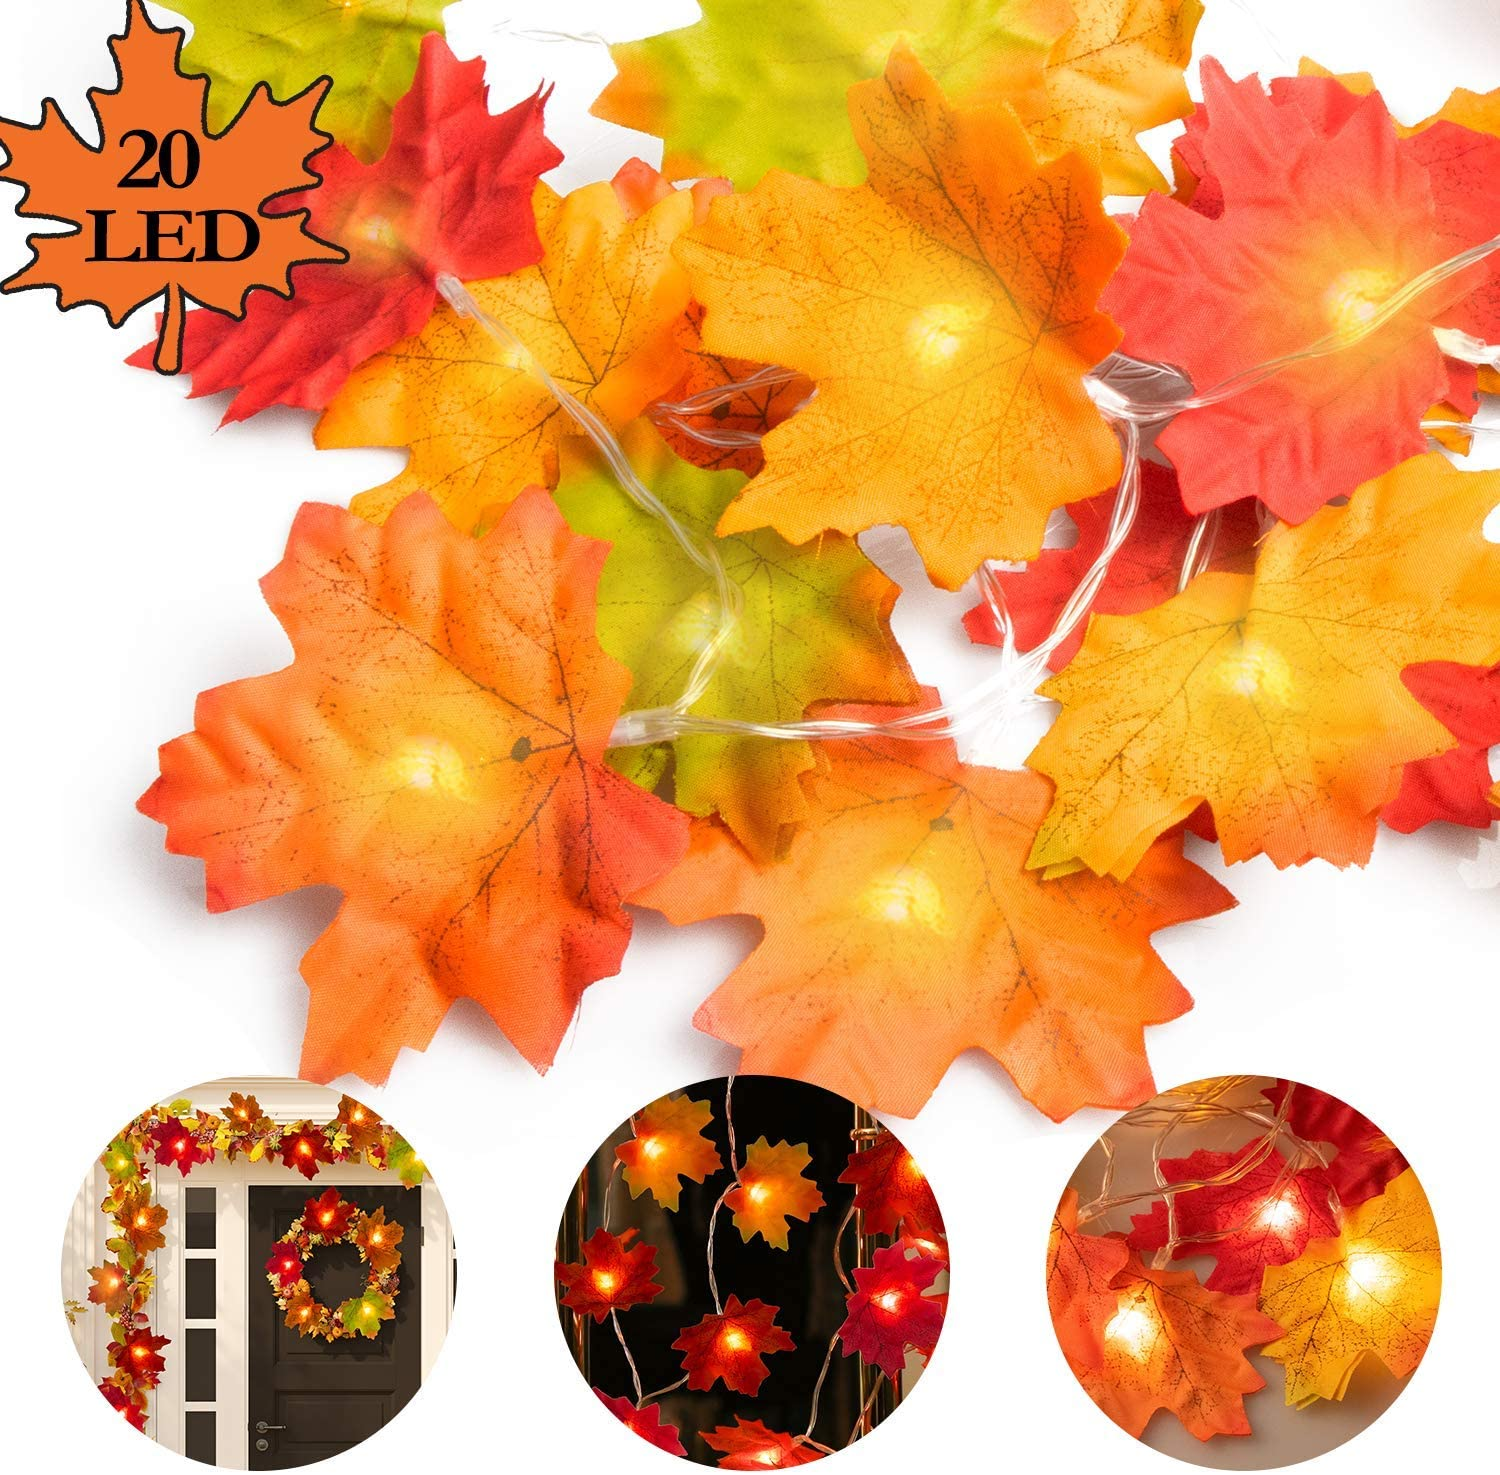 Ponwec Fall Room Decor Maple Leaf Light, Unique 5 Vivid Colors Fall Leaf Garland with 20 Lights Twinkle Decorative Hanging Lights for Indoor Outdoor Home Thanksgiving Fall Party Decorations